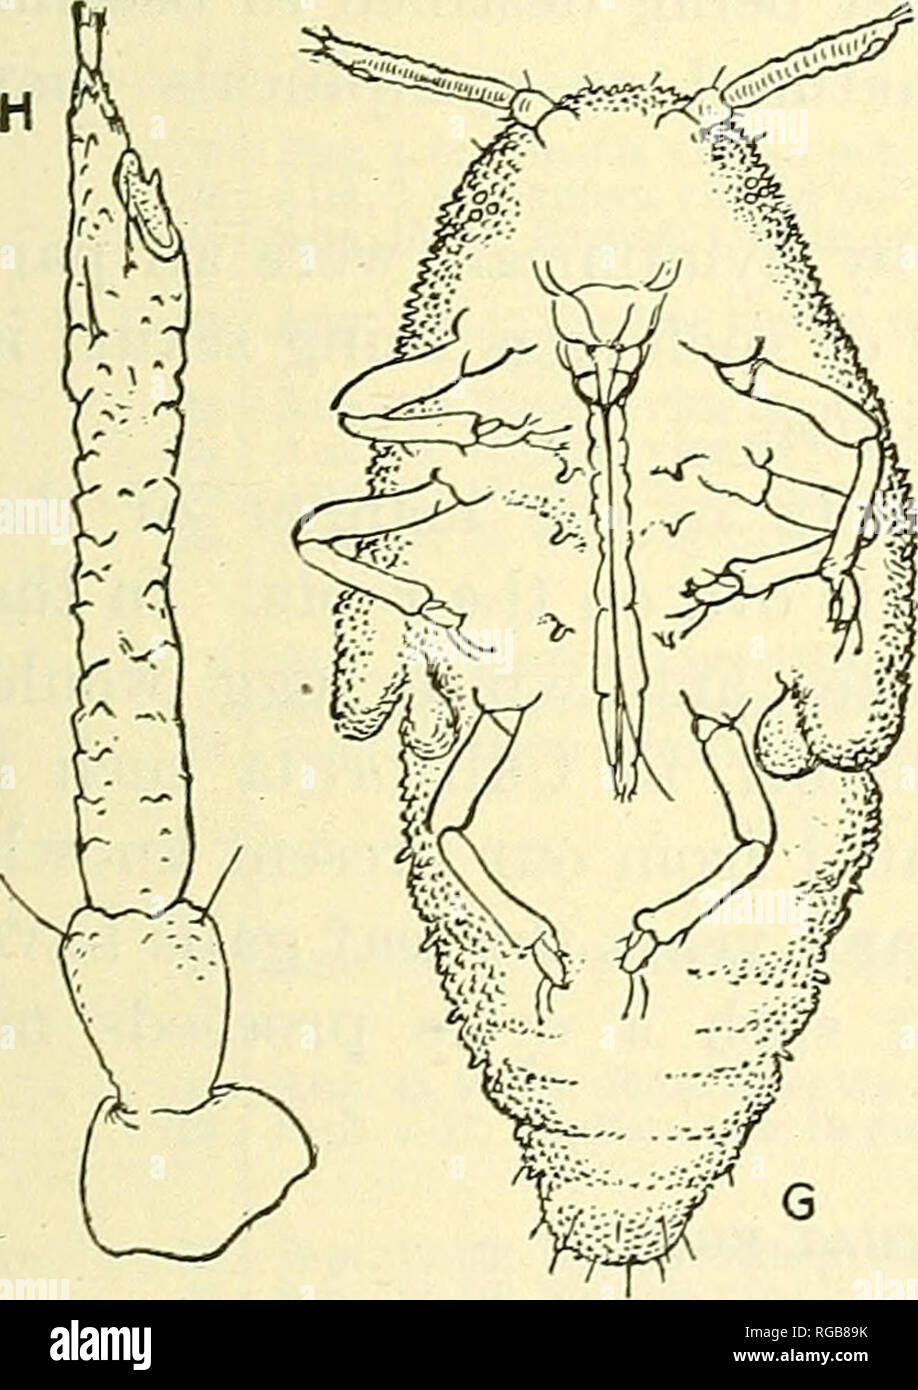 . Bulletin of the U.S. Department of Agriculture. Agriculture; Agriculture. Fig. 8.—Phylloxera vitifoliae: Types of antenna of intermediates. Greatly enlarged. eyes were absent, and in no case were ocelli discernible. In most in- dividuals there were two sensoria on the last antennal joint, and in one antenna there were two small basal sensoria and the usual apical sensorium, making three in all. The basal sen- soria were not in any case as large as those of the winged migrant. The an- tennae and legs were about as long as those of the nymph, noticeably longer on the average than those of the  - Stock Image